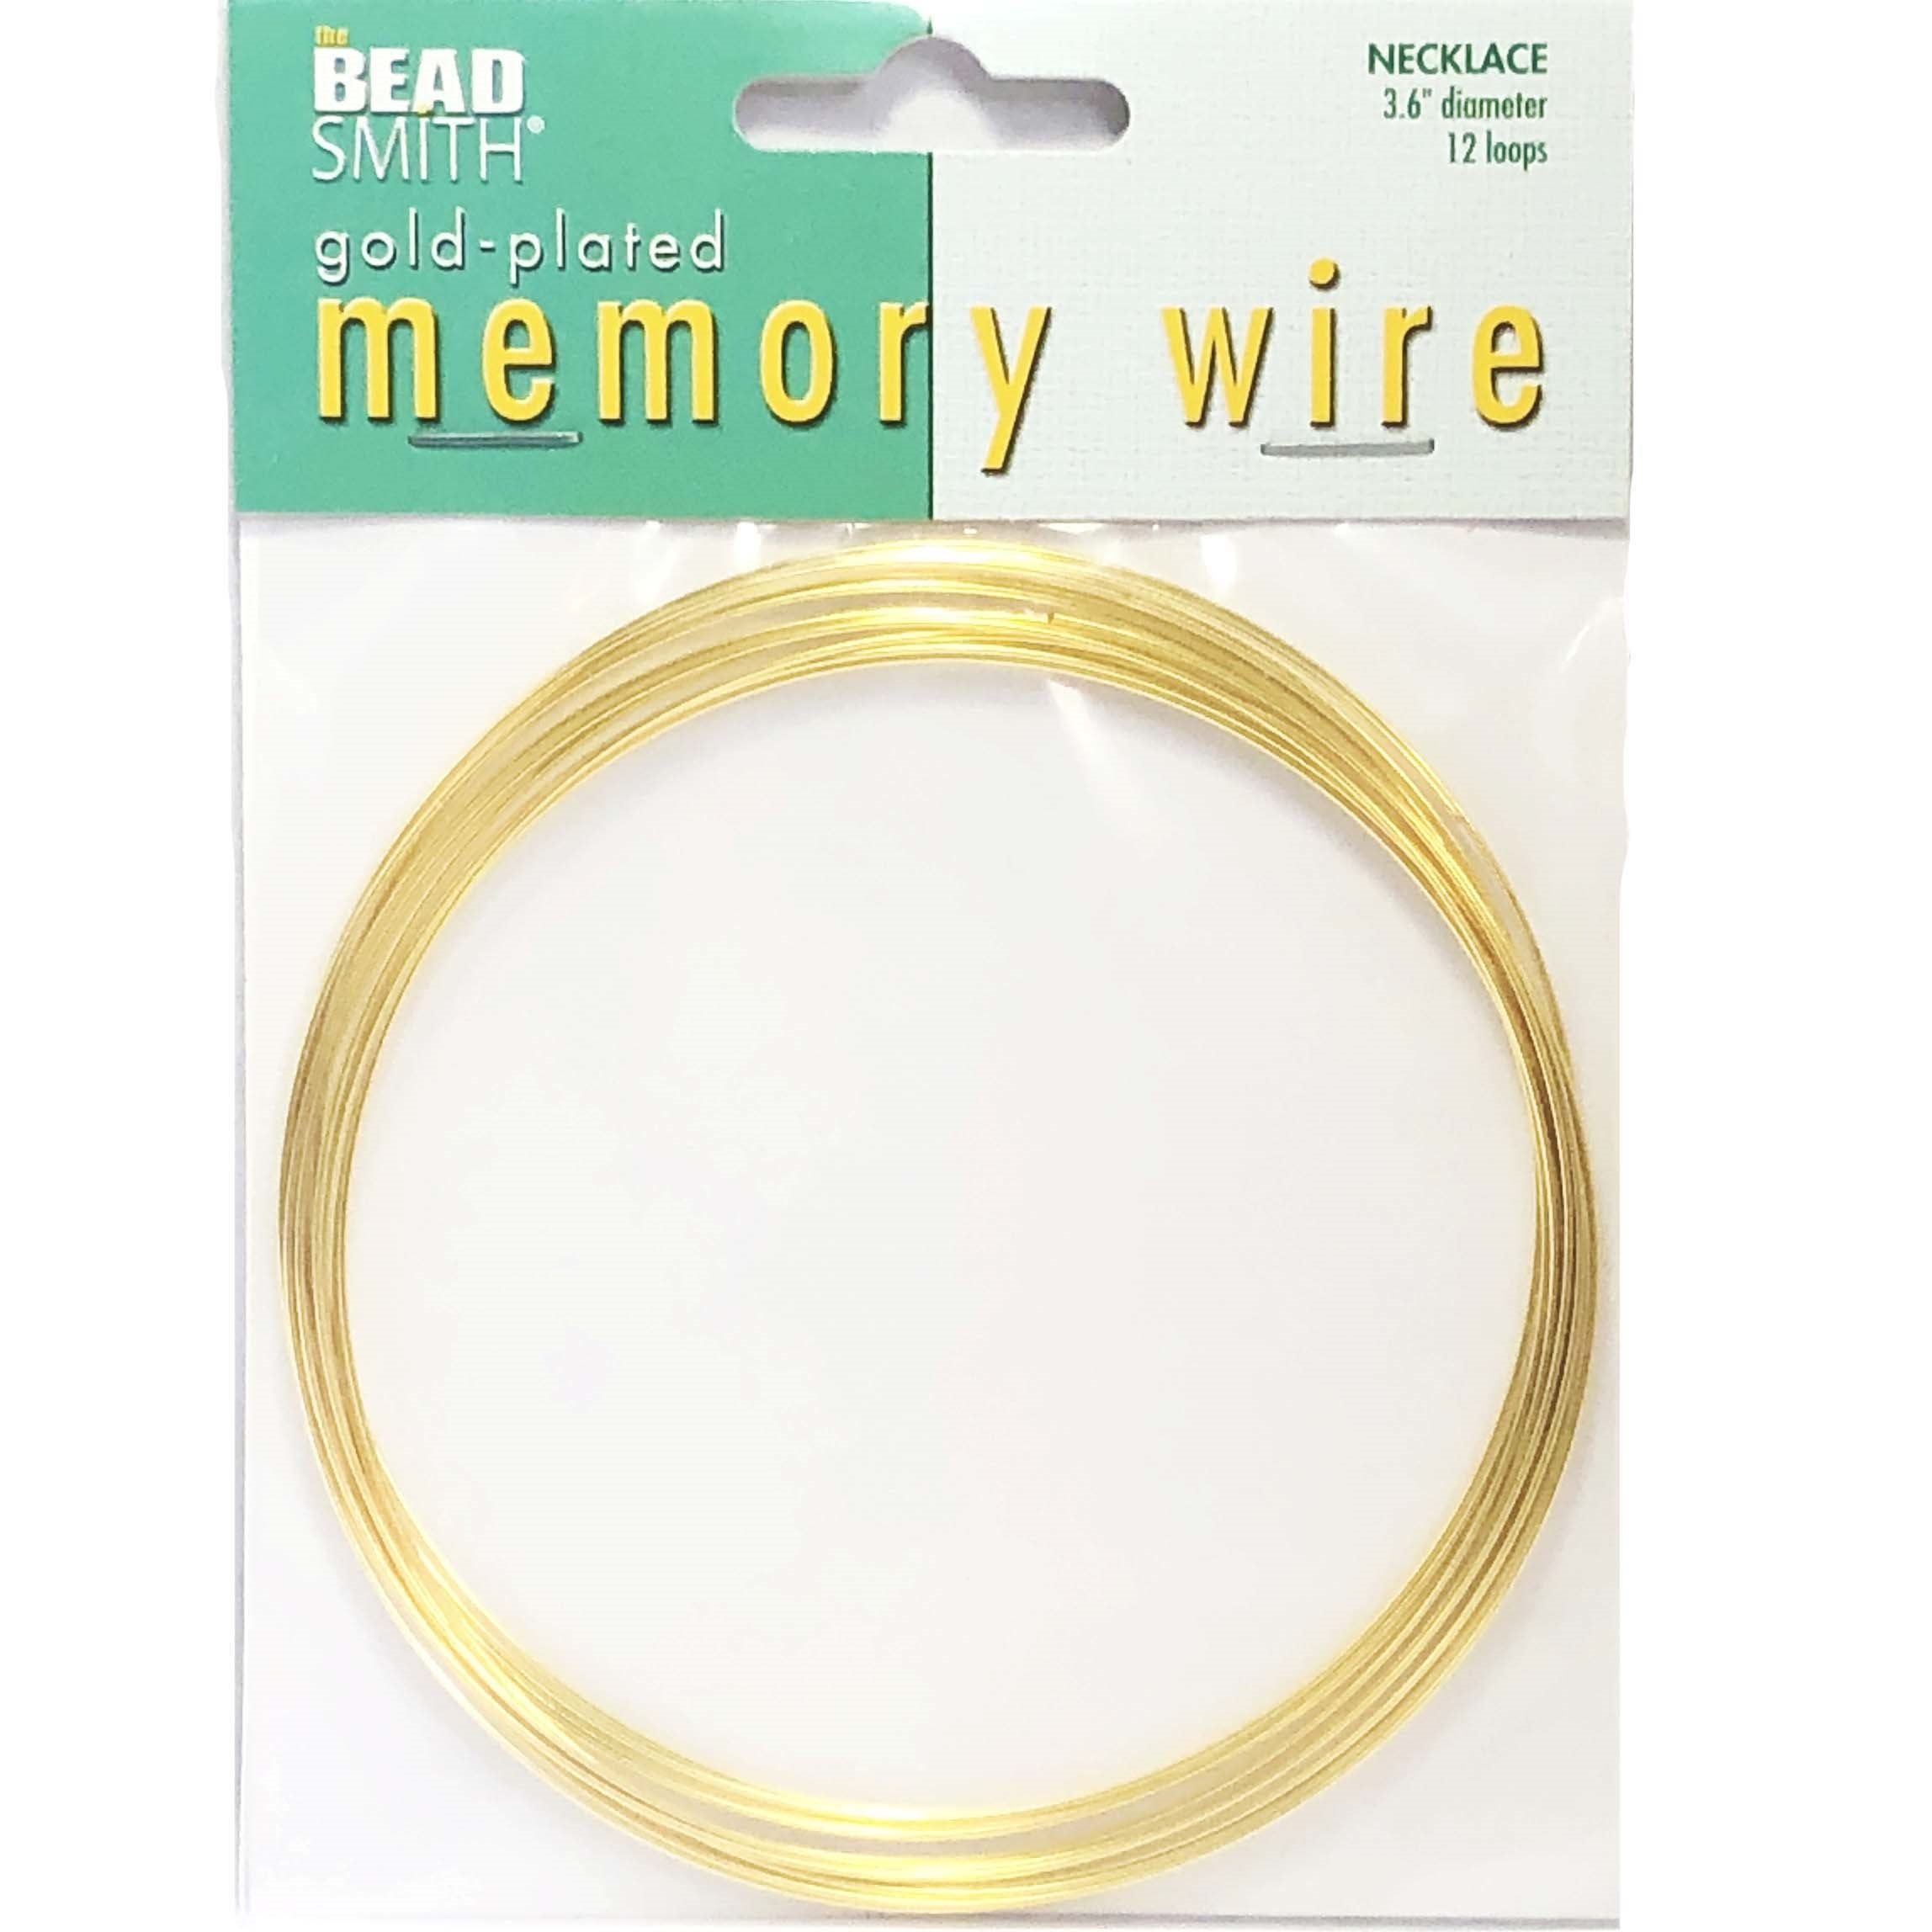 Round Memory Wire, Gold Plate, 045, 36 inch, necklace wire, jewelry wire, craft wire, jewelry making supplies, stainless steel memory wire, 12 loop wire, round wire